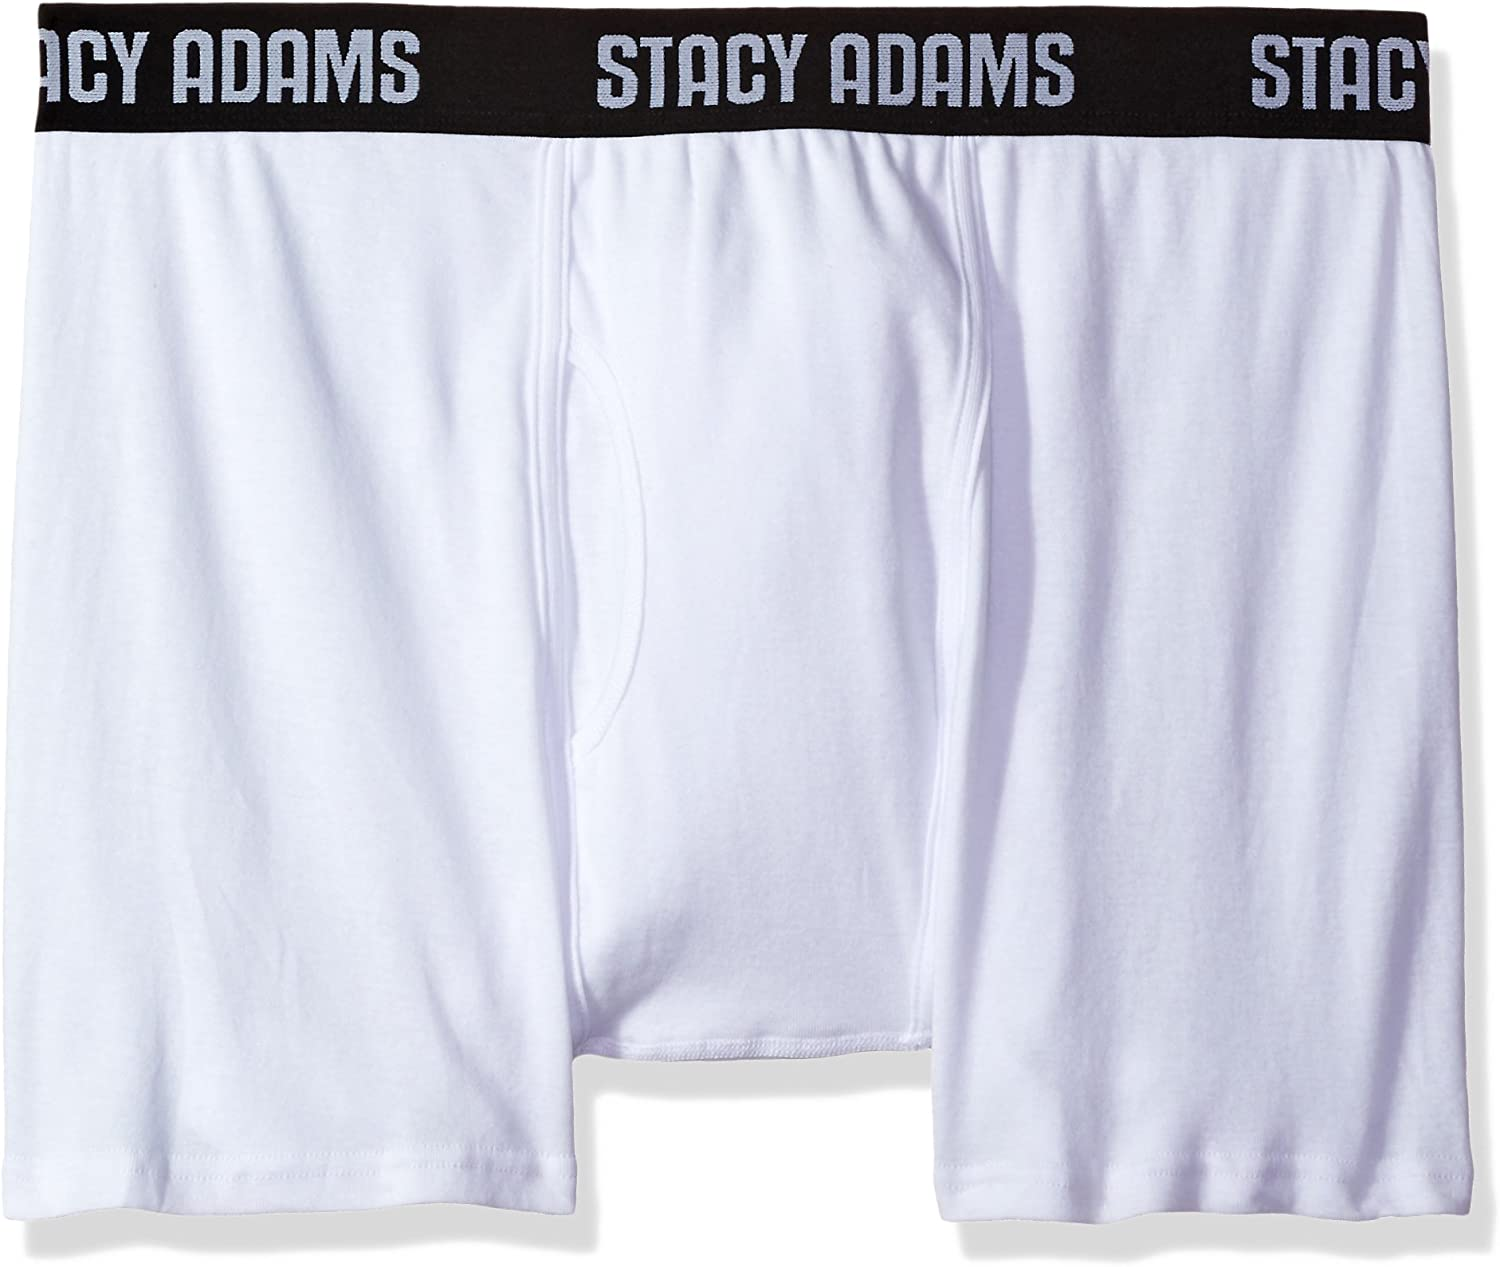 STACY ADAMS Men's Tall 4pack Cotton Boxer Brief, Big Sizes